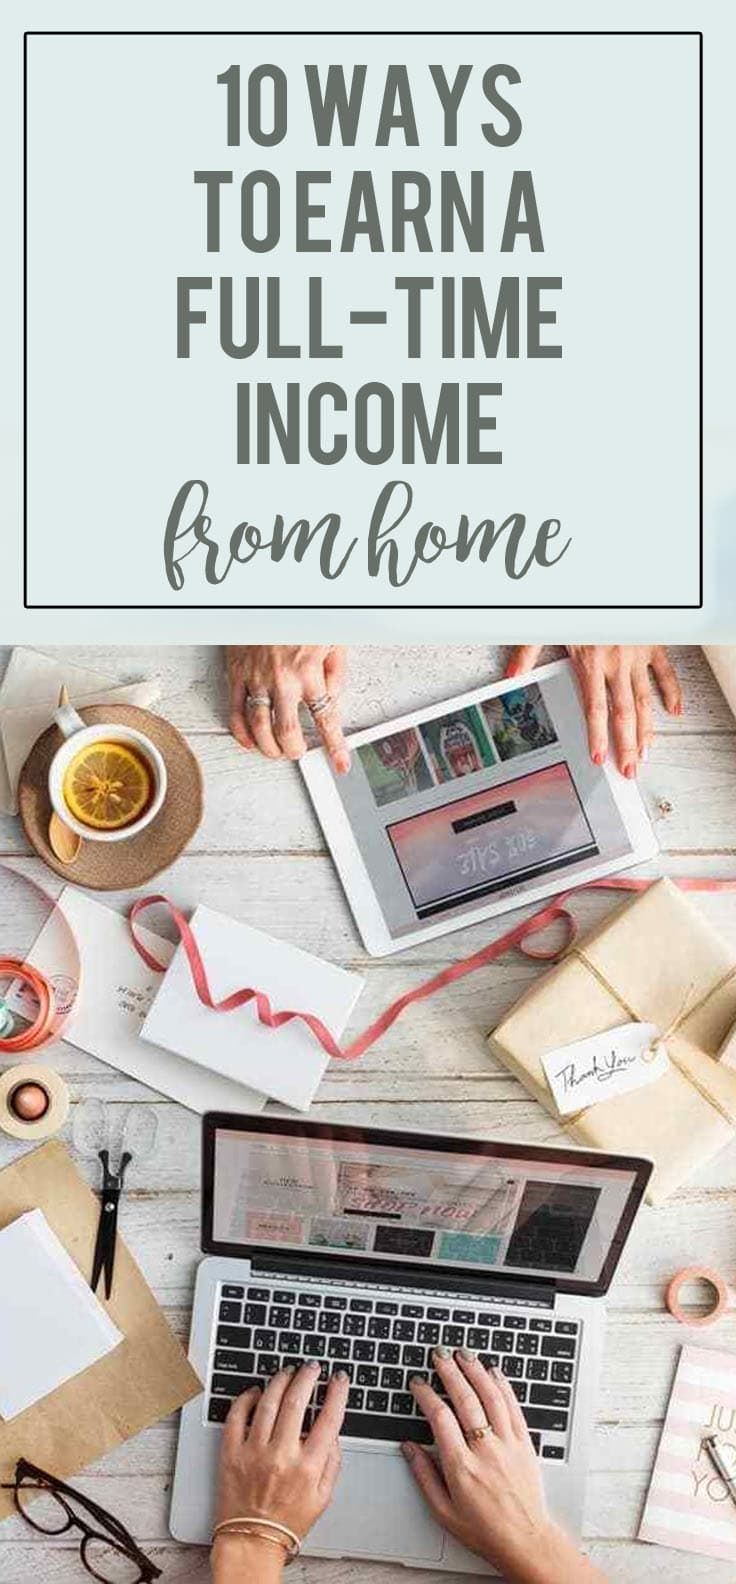 10 Ways to Earn a Full-Time income from home that anyone can do!